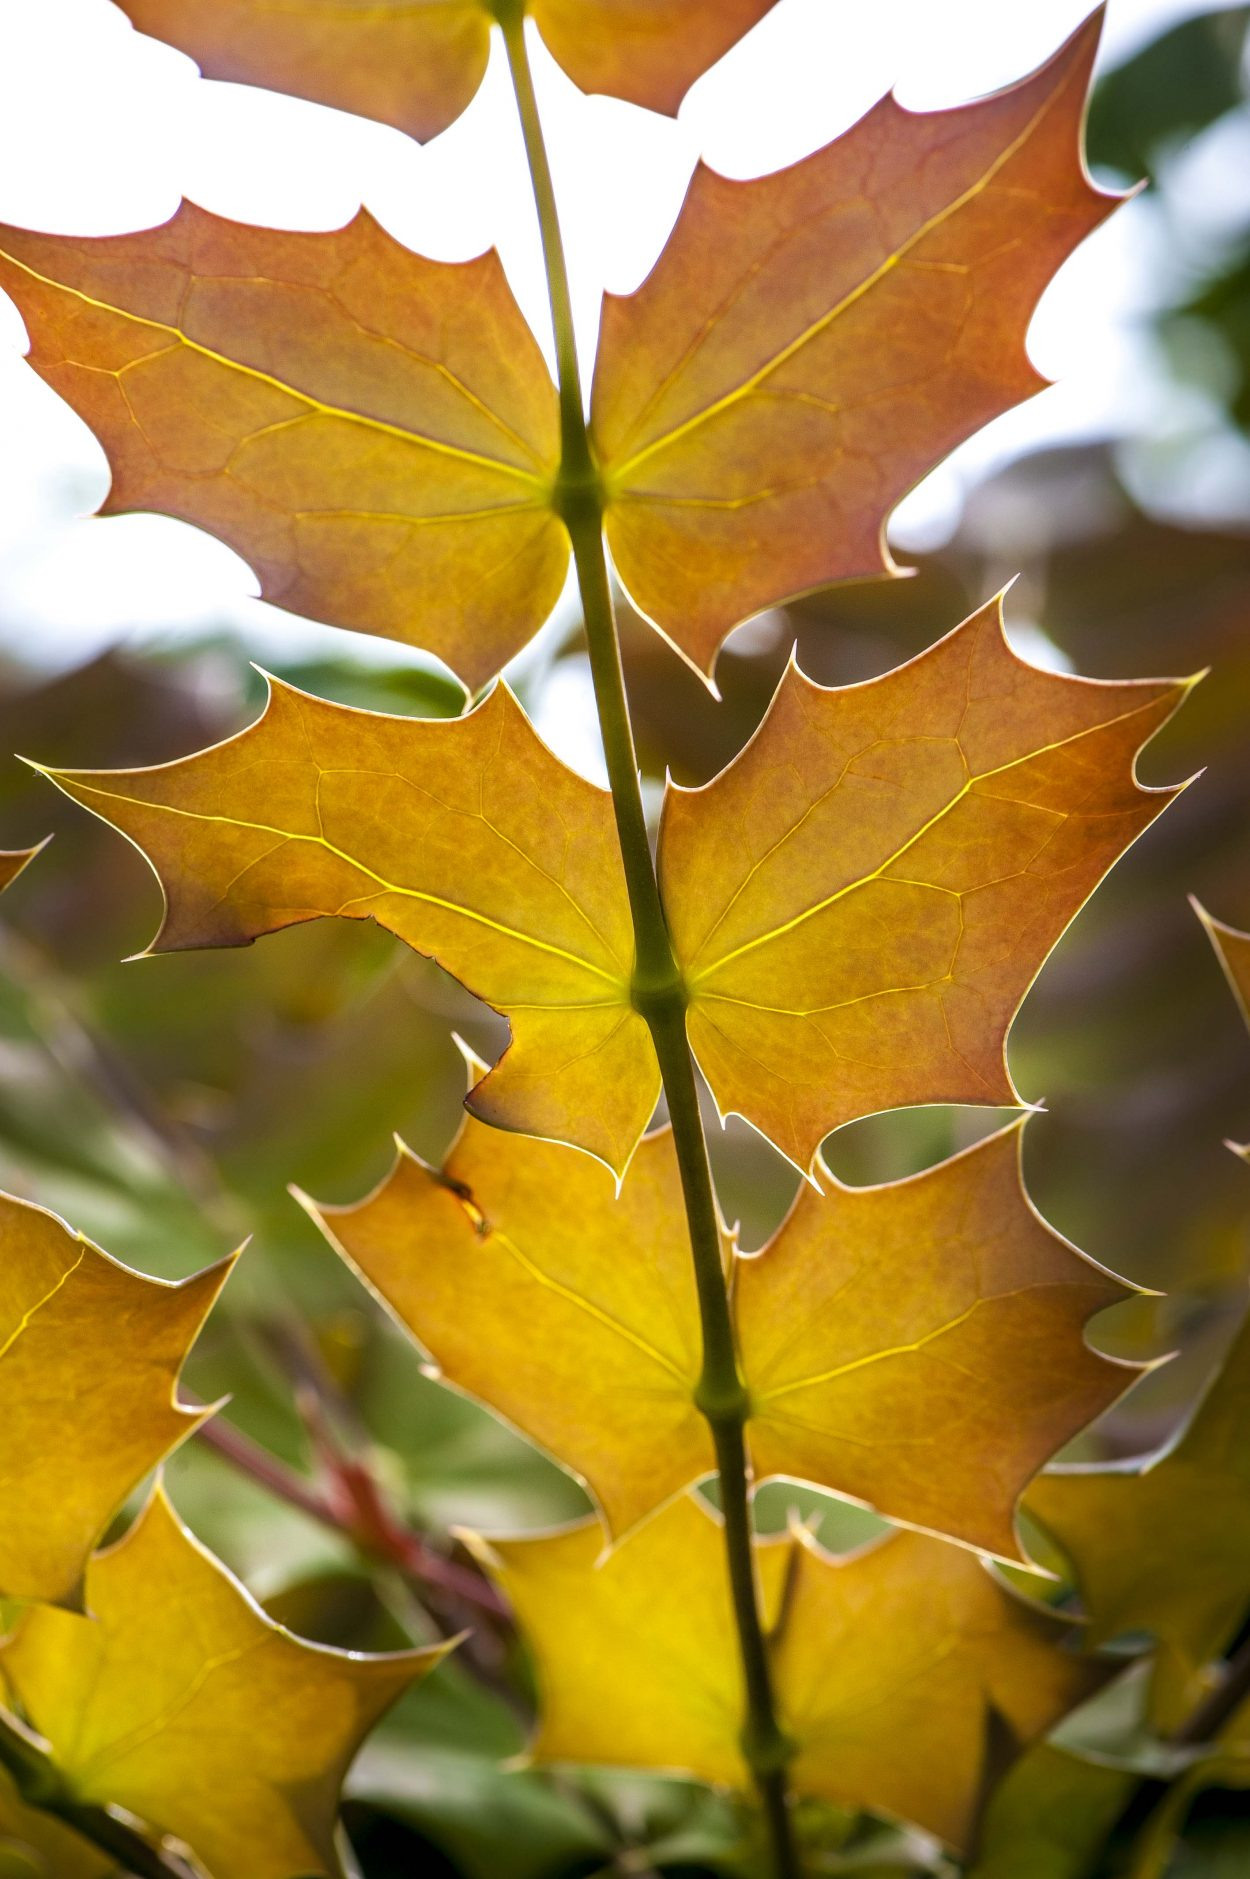 Gold Mahonia leaves, one of 2017's garden trends is the color gold.